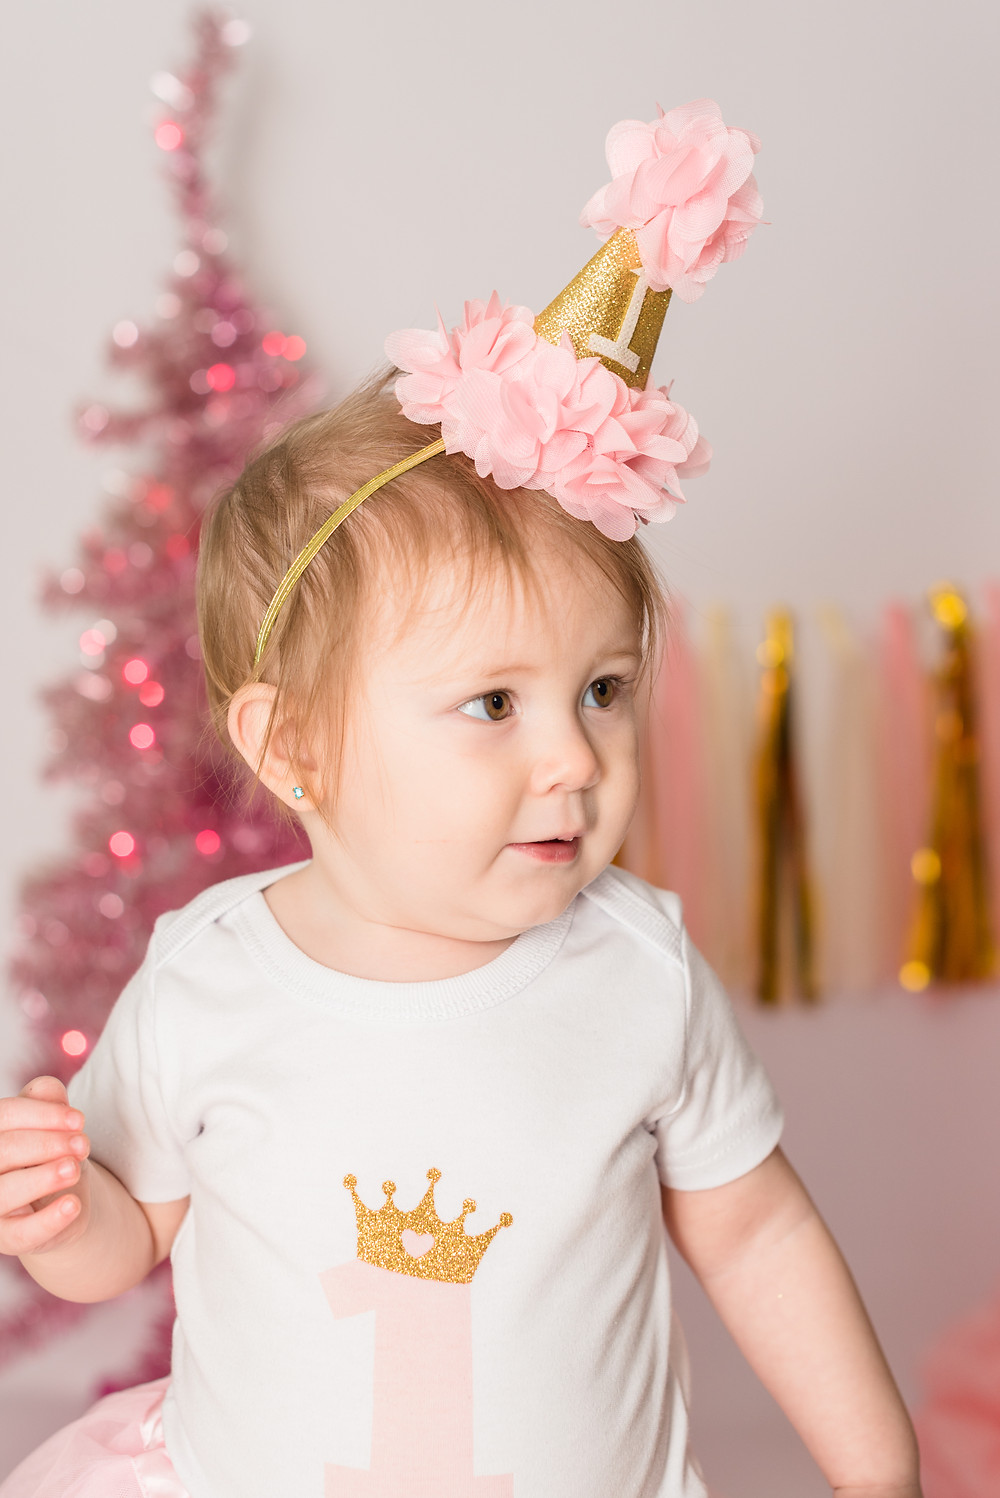 One year old girl celebrating her first birthday with a cake smash photography session. She is wearing a party hat.